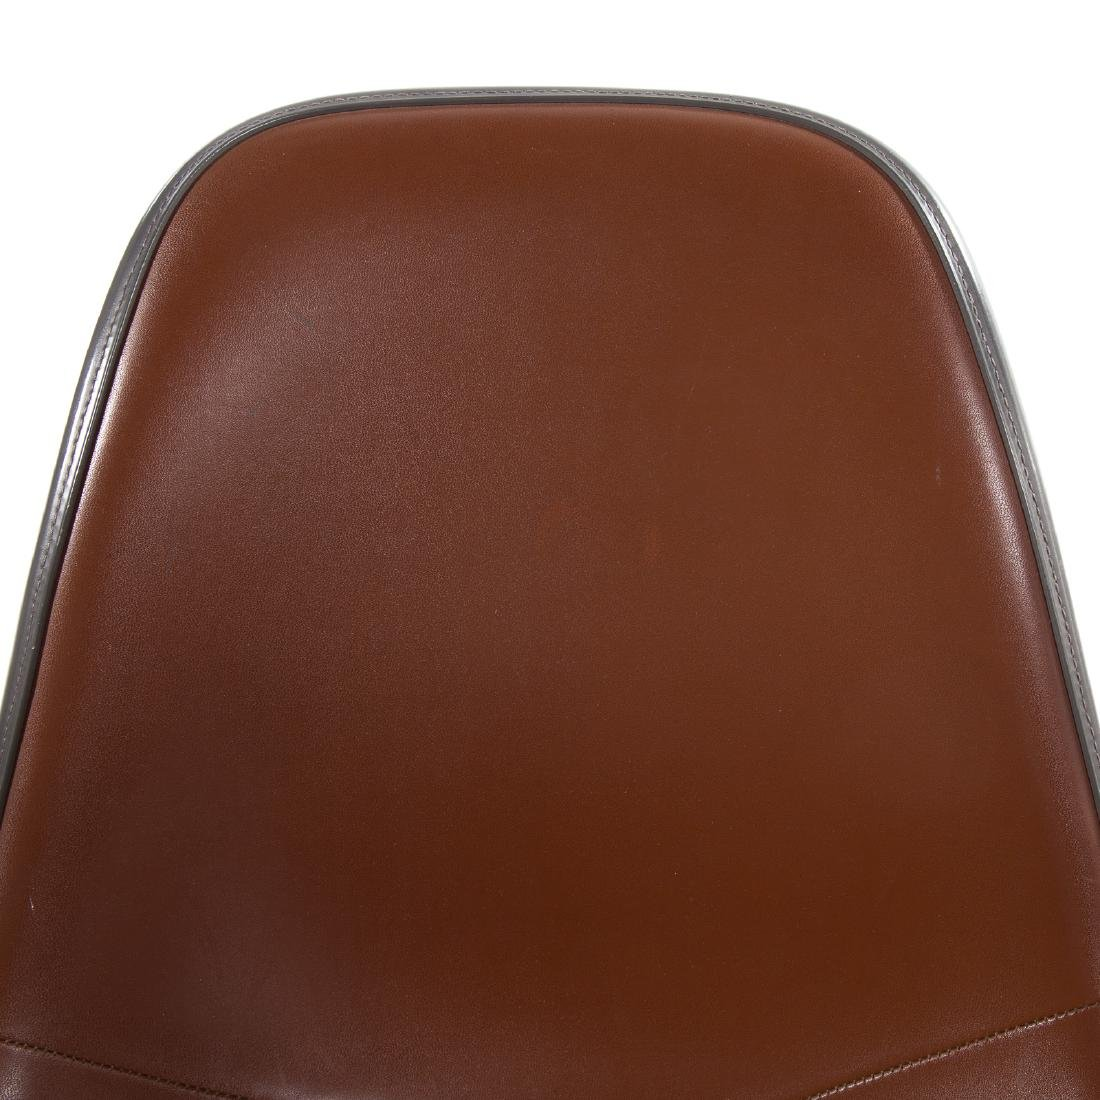 Pair Eames Herman Miller style Eiffel base chairs - 2